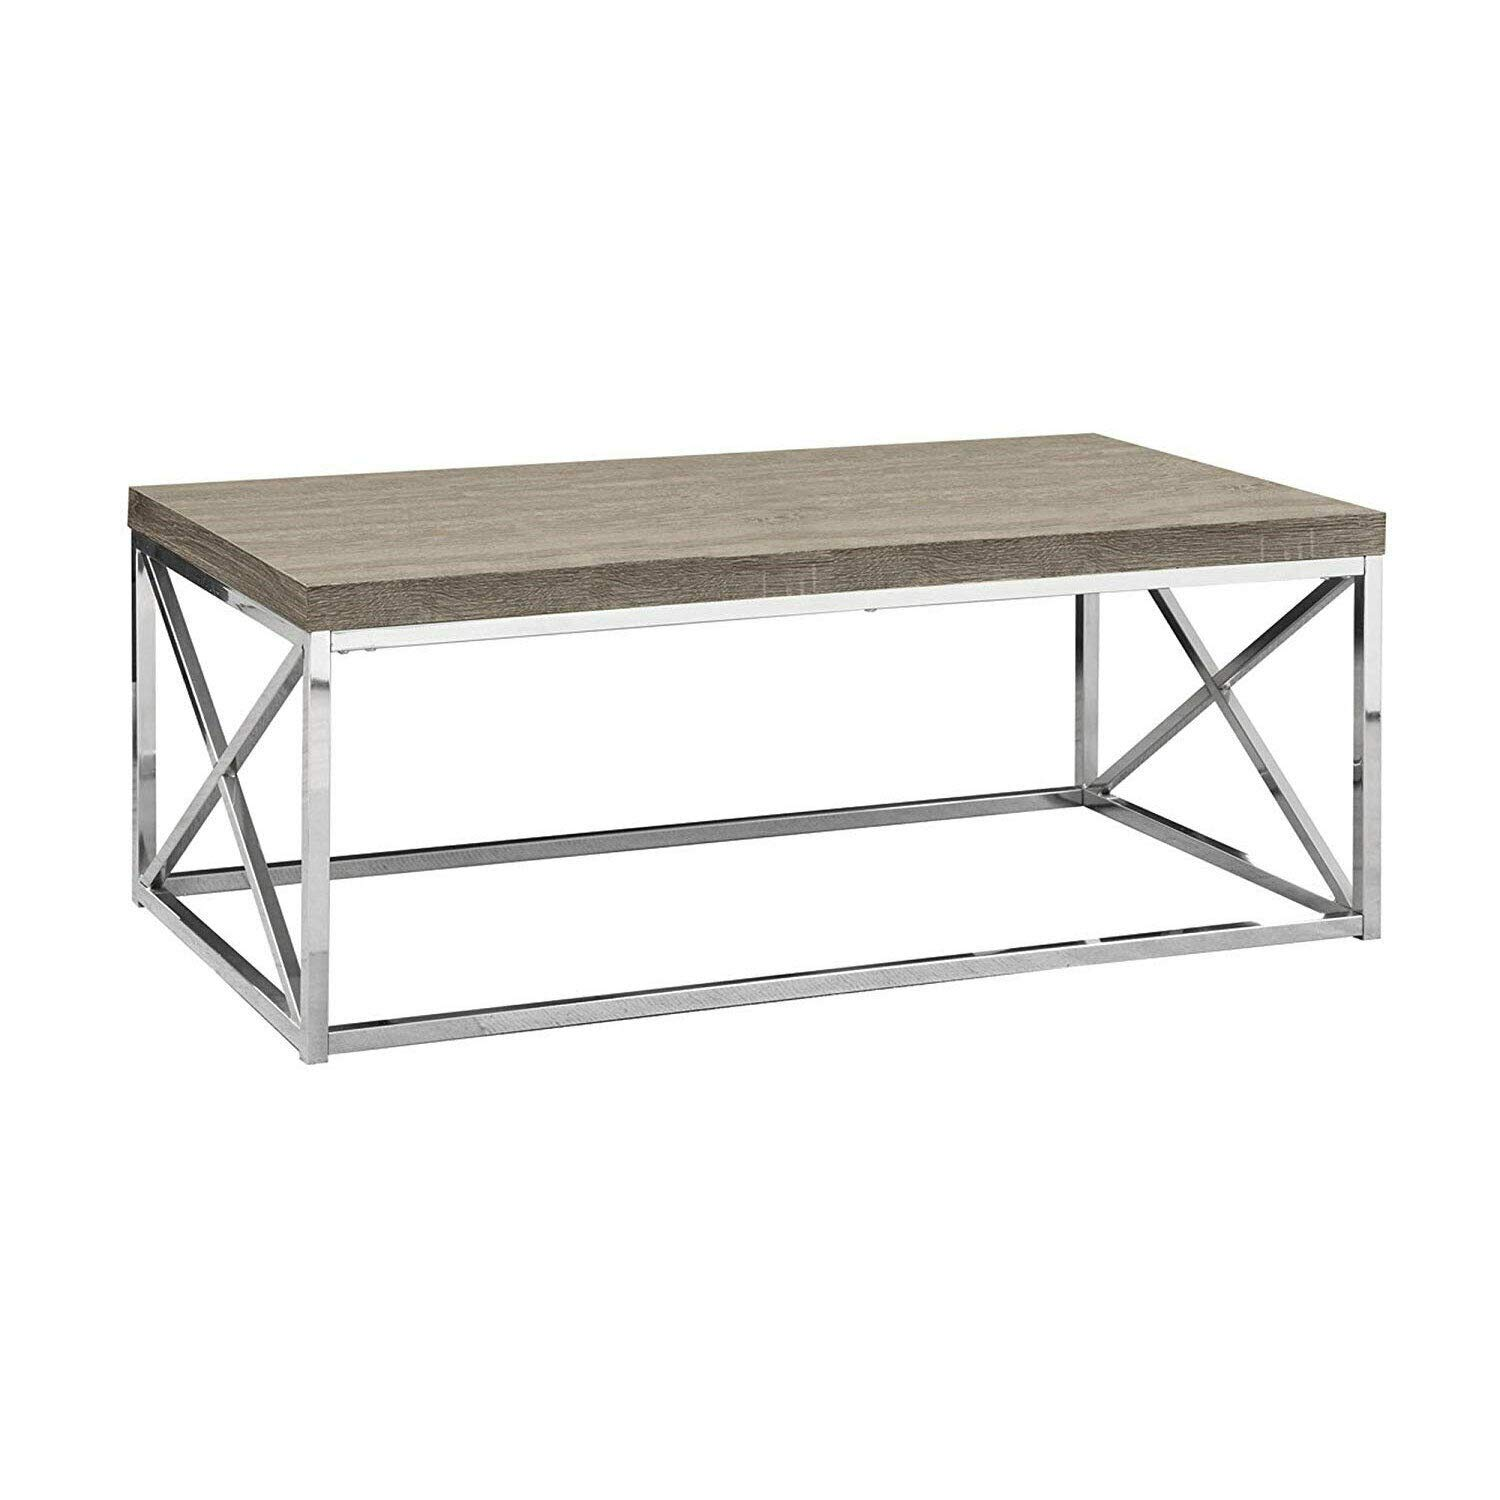 Criss Cross Coffee Table.Amazon Com Dark Taupe 44 Rectangular Coffee Table Contemporary